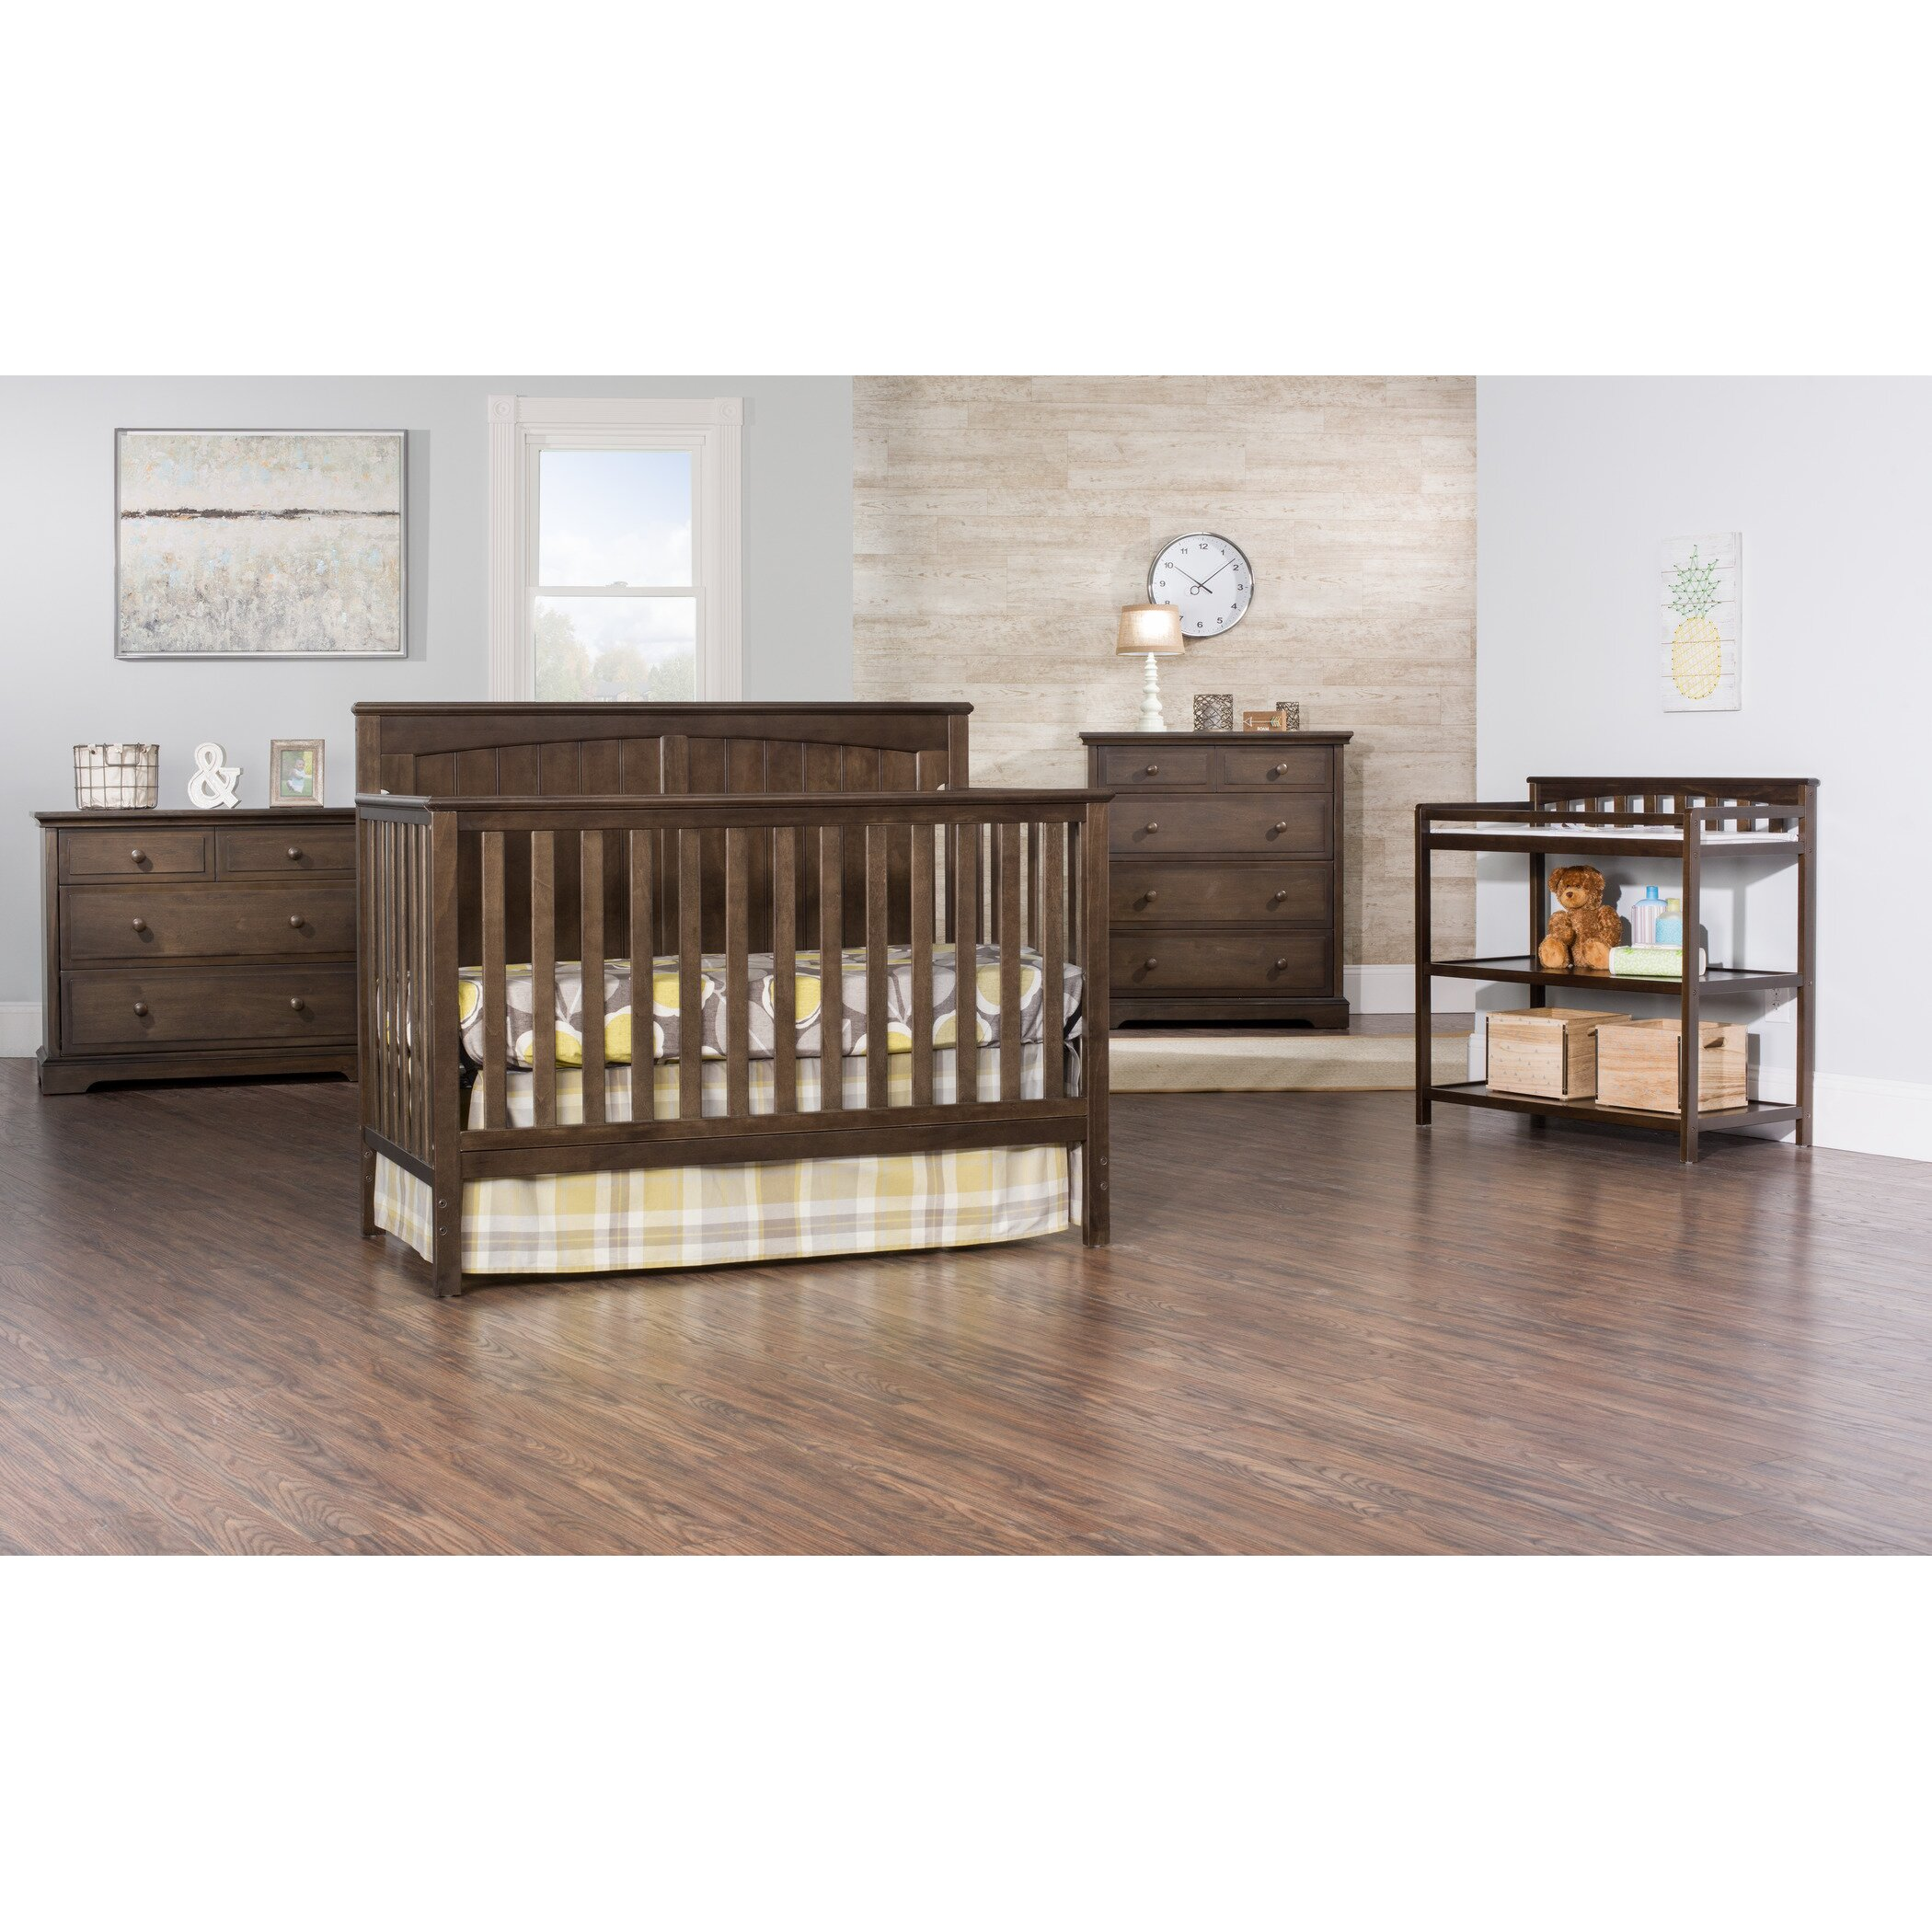 Baby crib youth bed - Sheldon 4 In 1 Convertible Crib